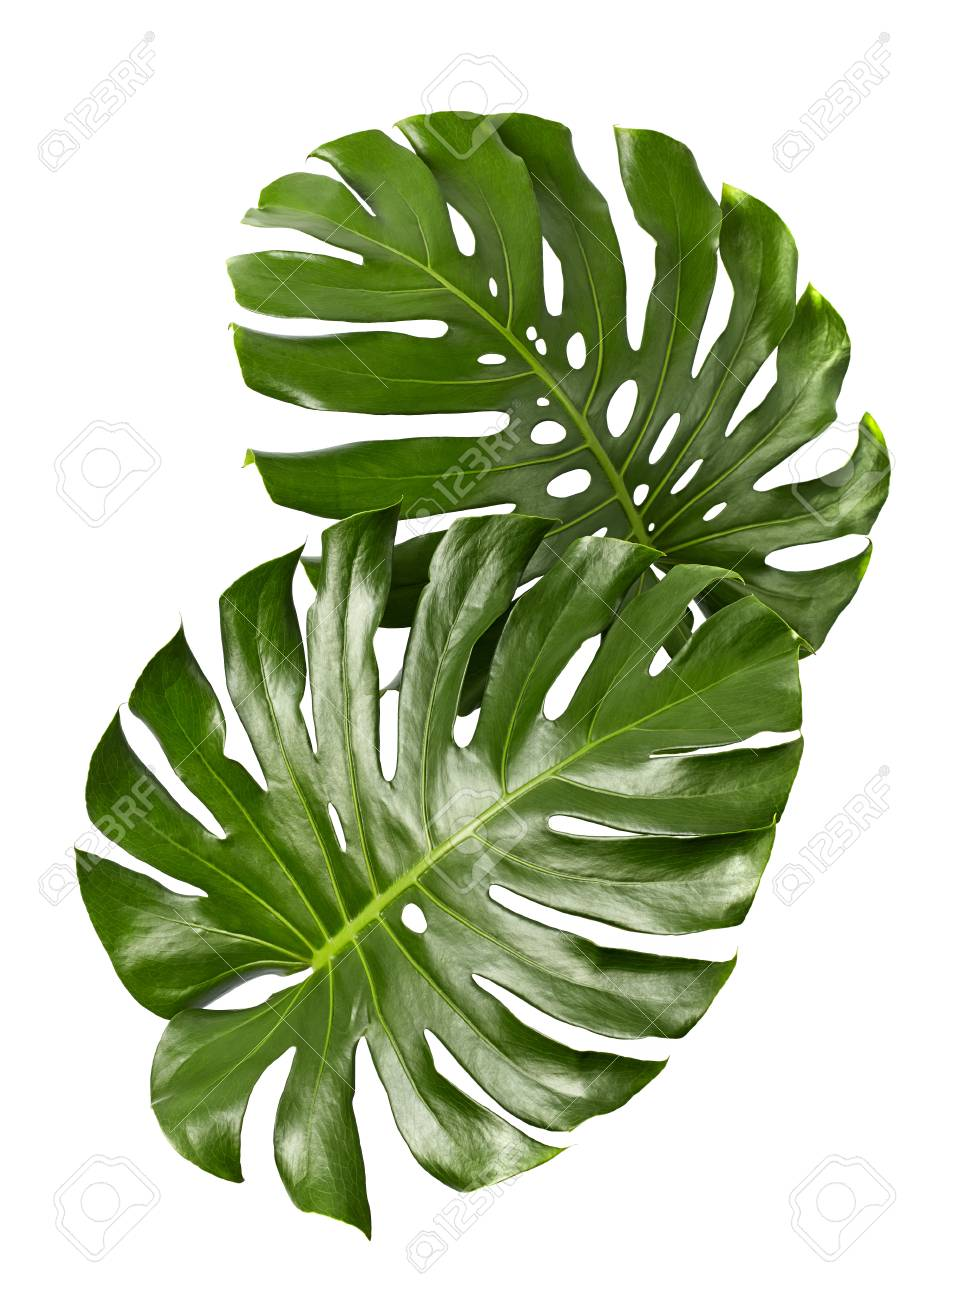 Monstera Deliciosa Leaf Or Swiss Cheese Plant Tropical Foliage Stock Photo Picture And Royalty Free Image Image 95037989